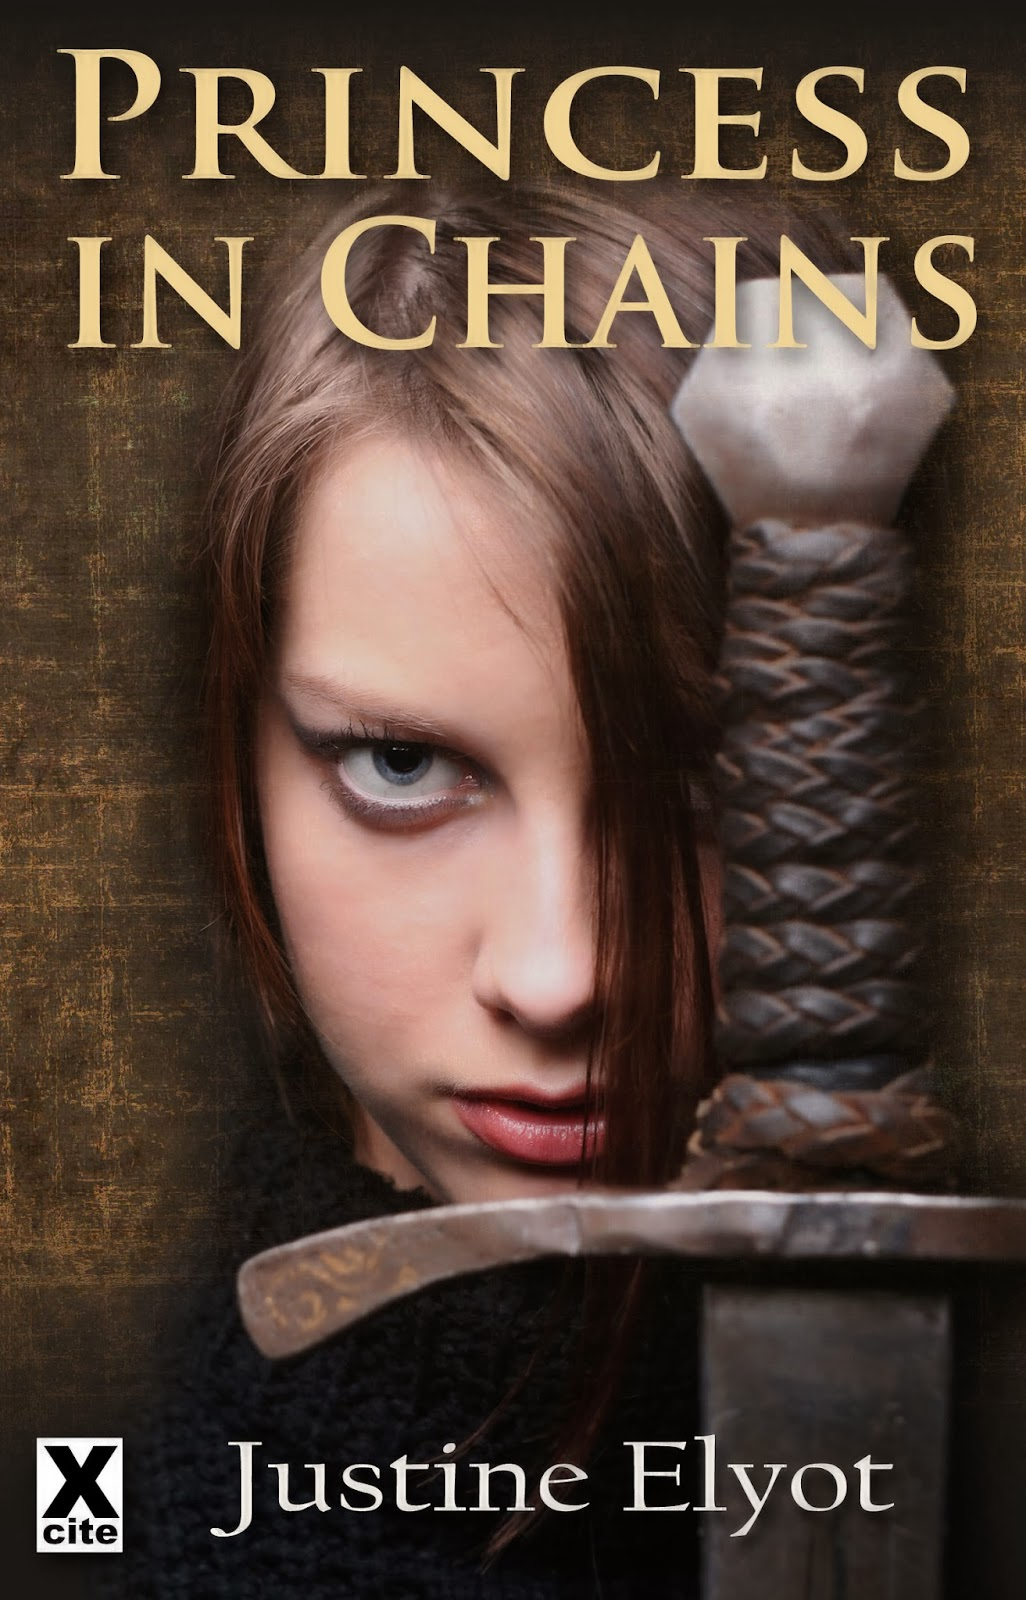 A Princess in Chains: Justine Elyot